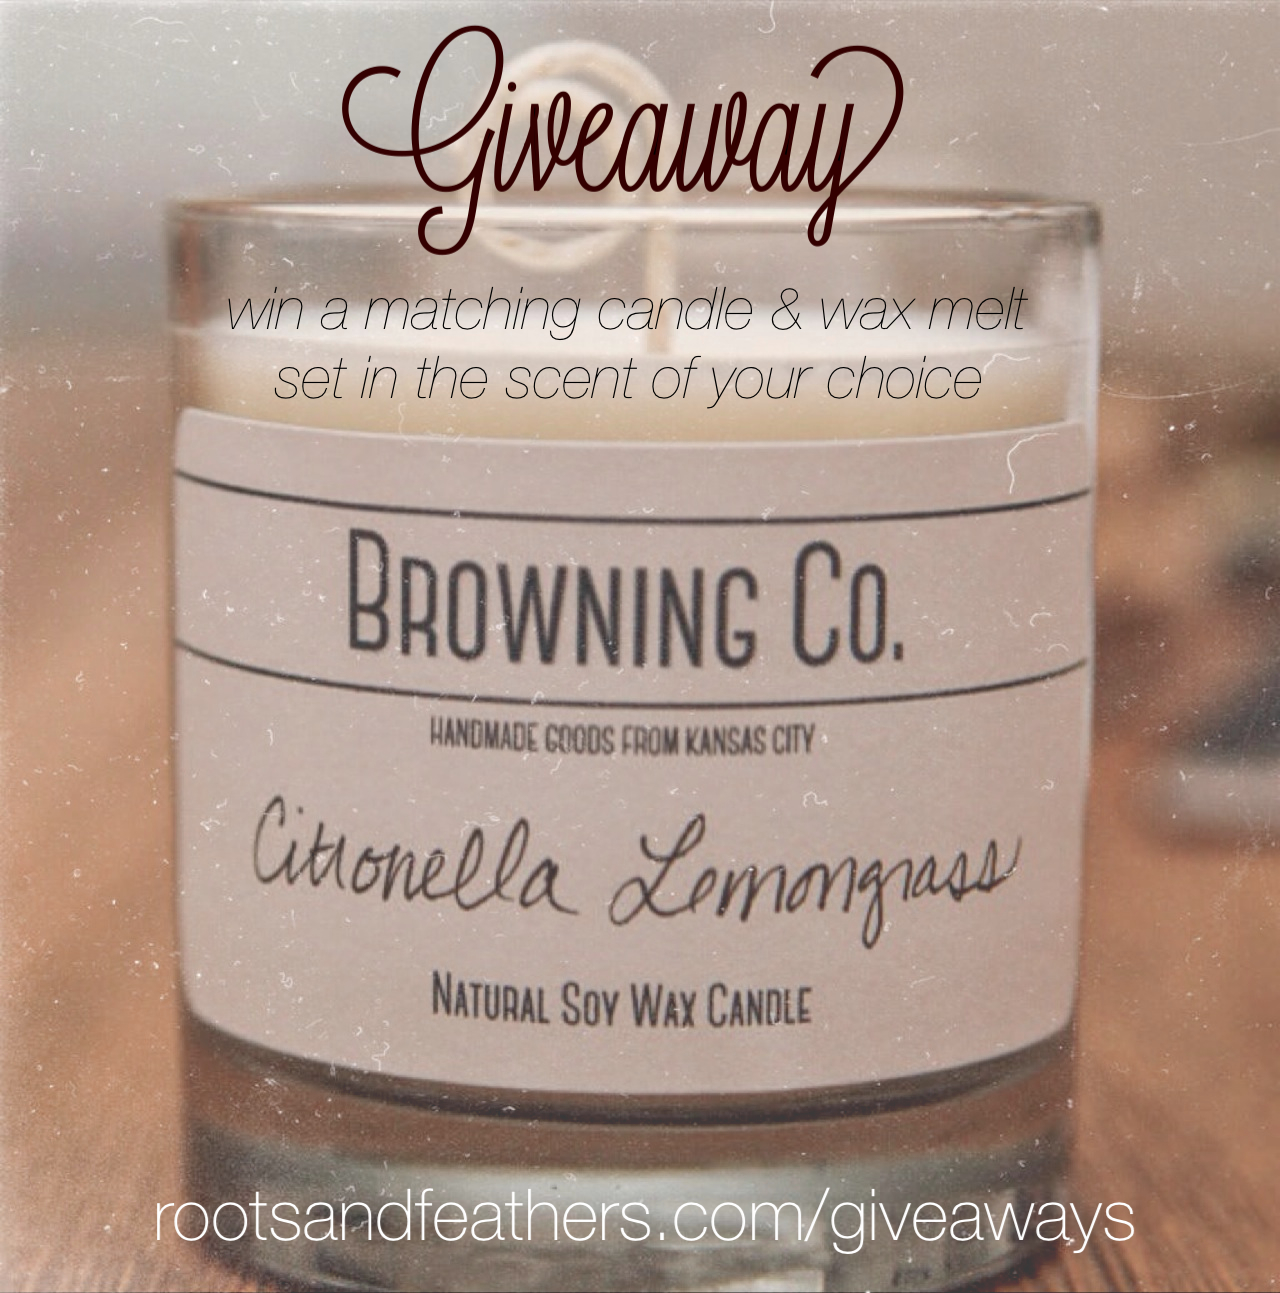 browning candle giveaway via rootsandfeathers.com